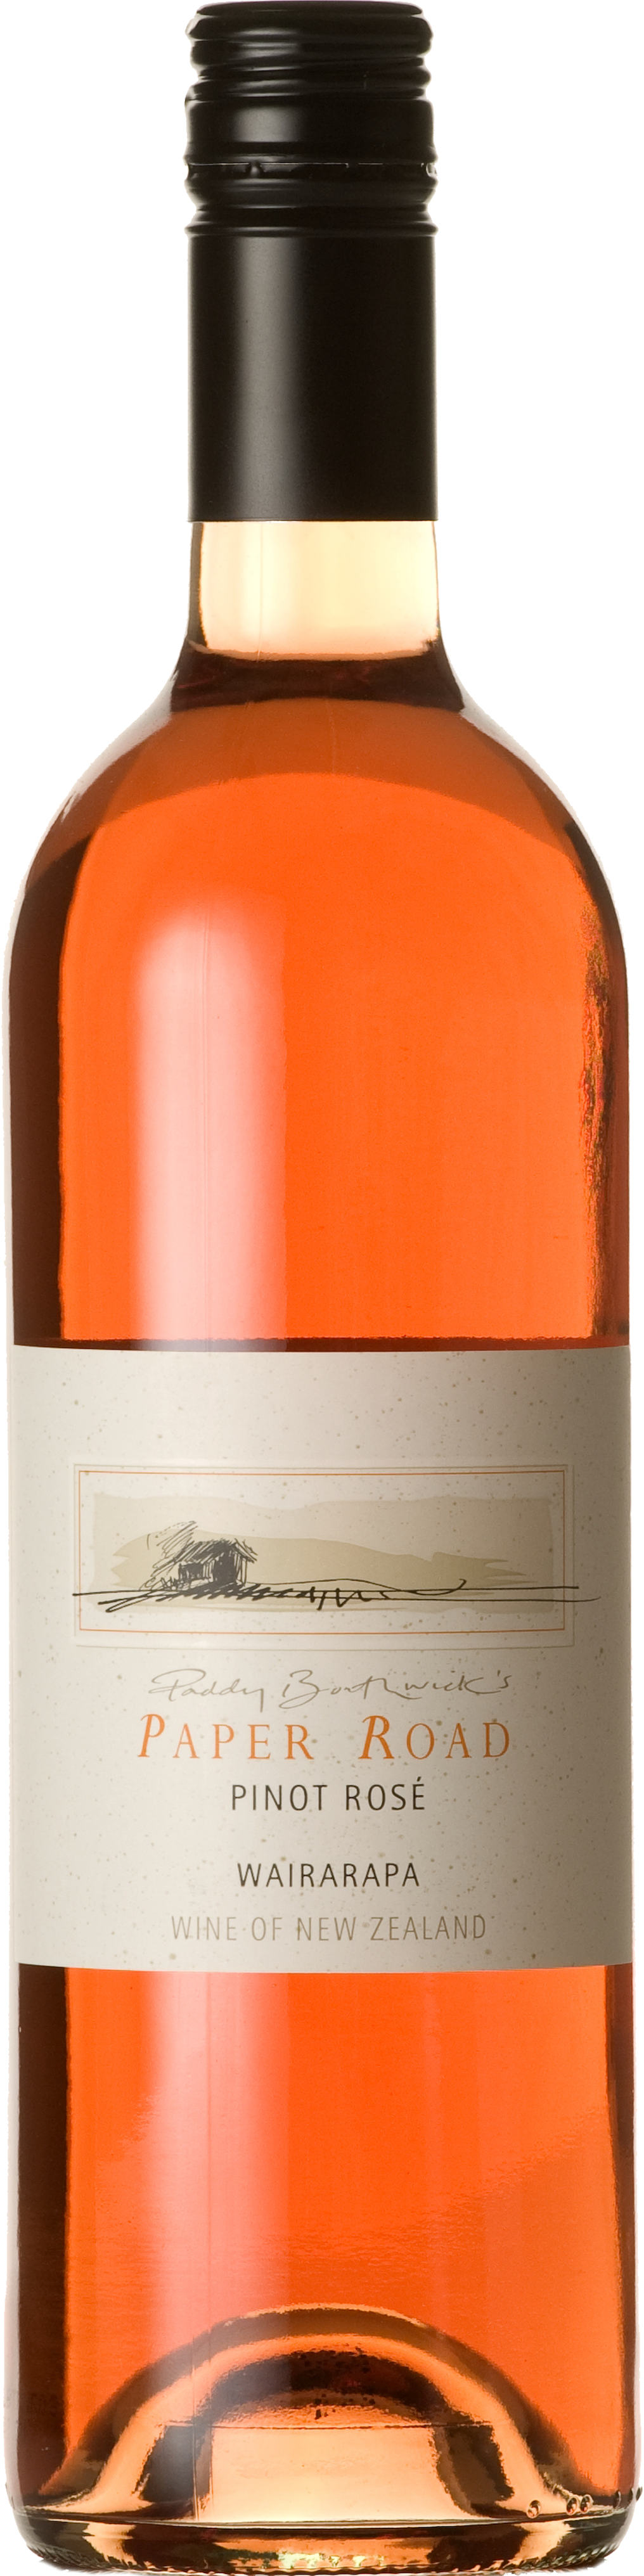 Image of product Paper Road Pinot Rosé